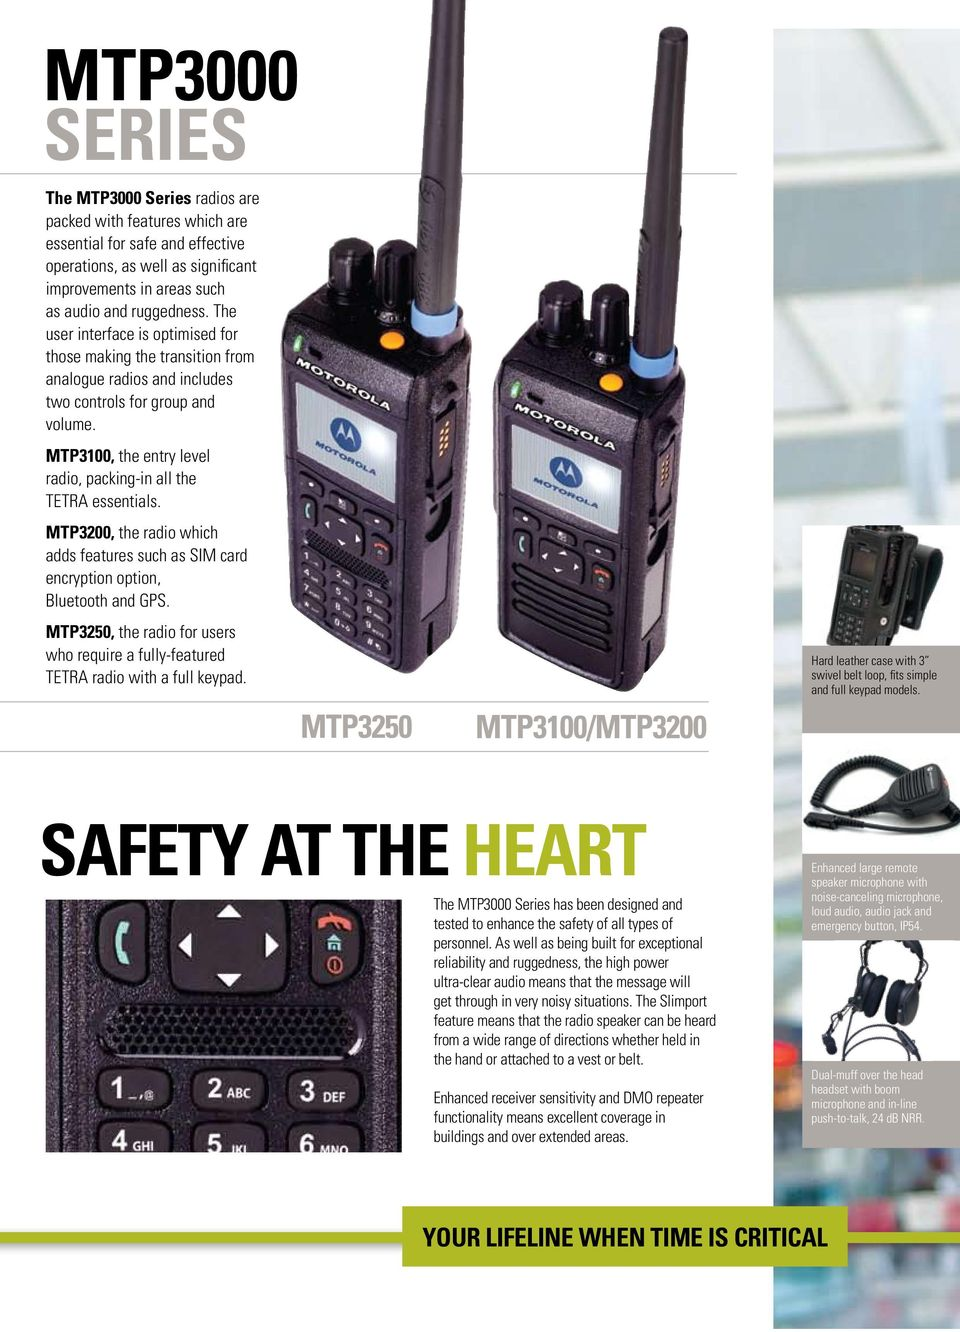 MTP3000 SerieS SAFer, TOUGHer, easier TO USe introducing